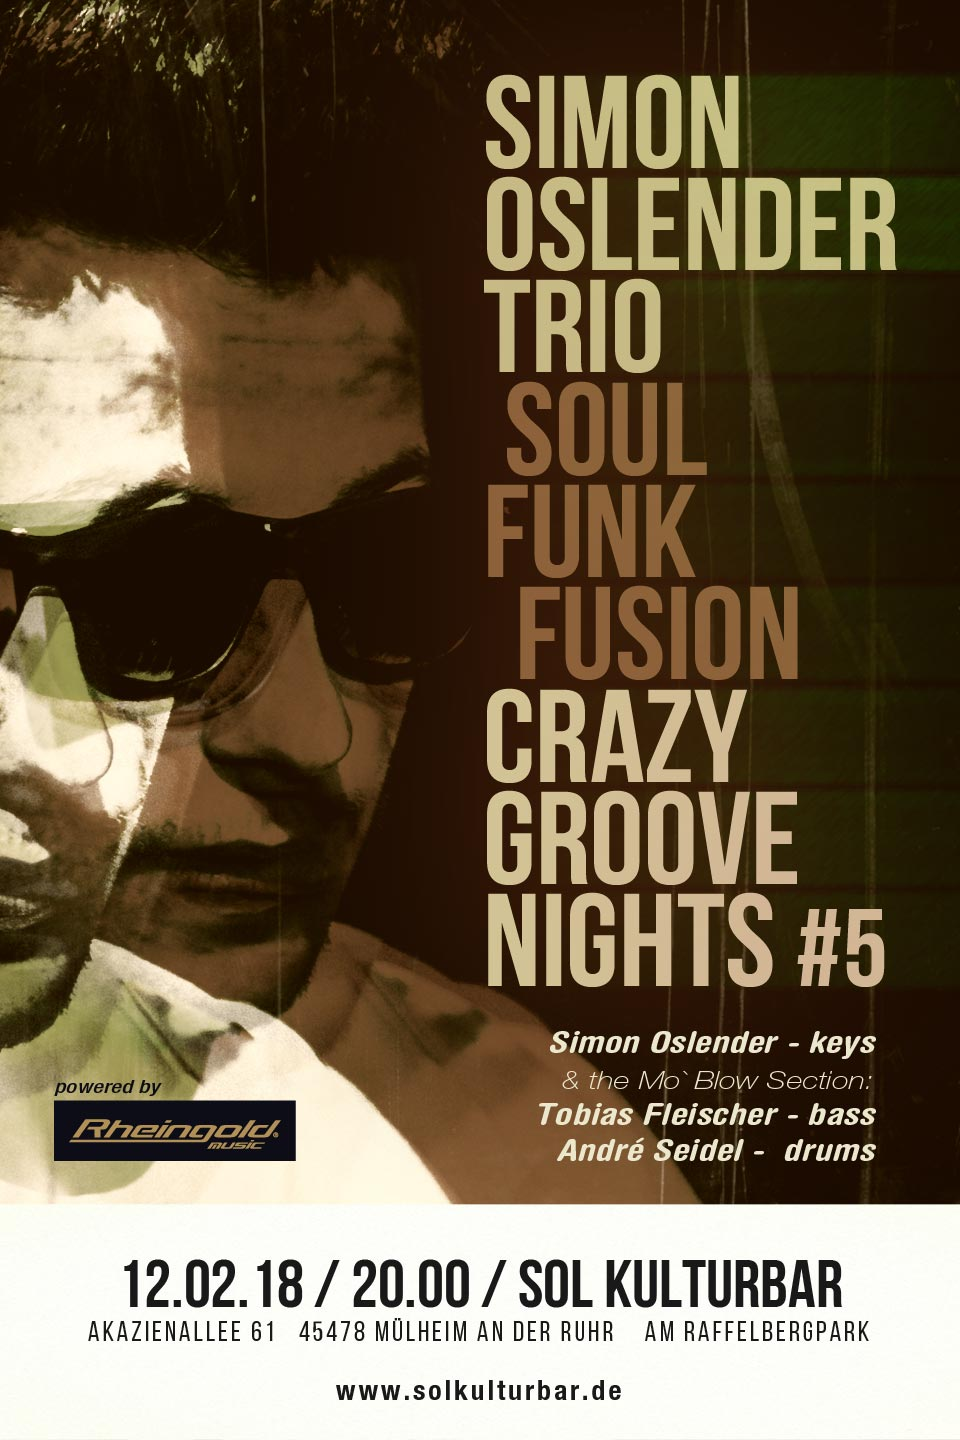 Simon Oslender Crazy Groove Nights #5